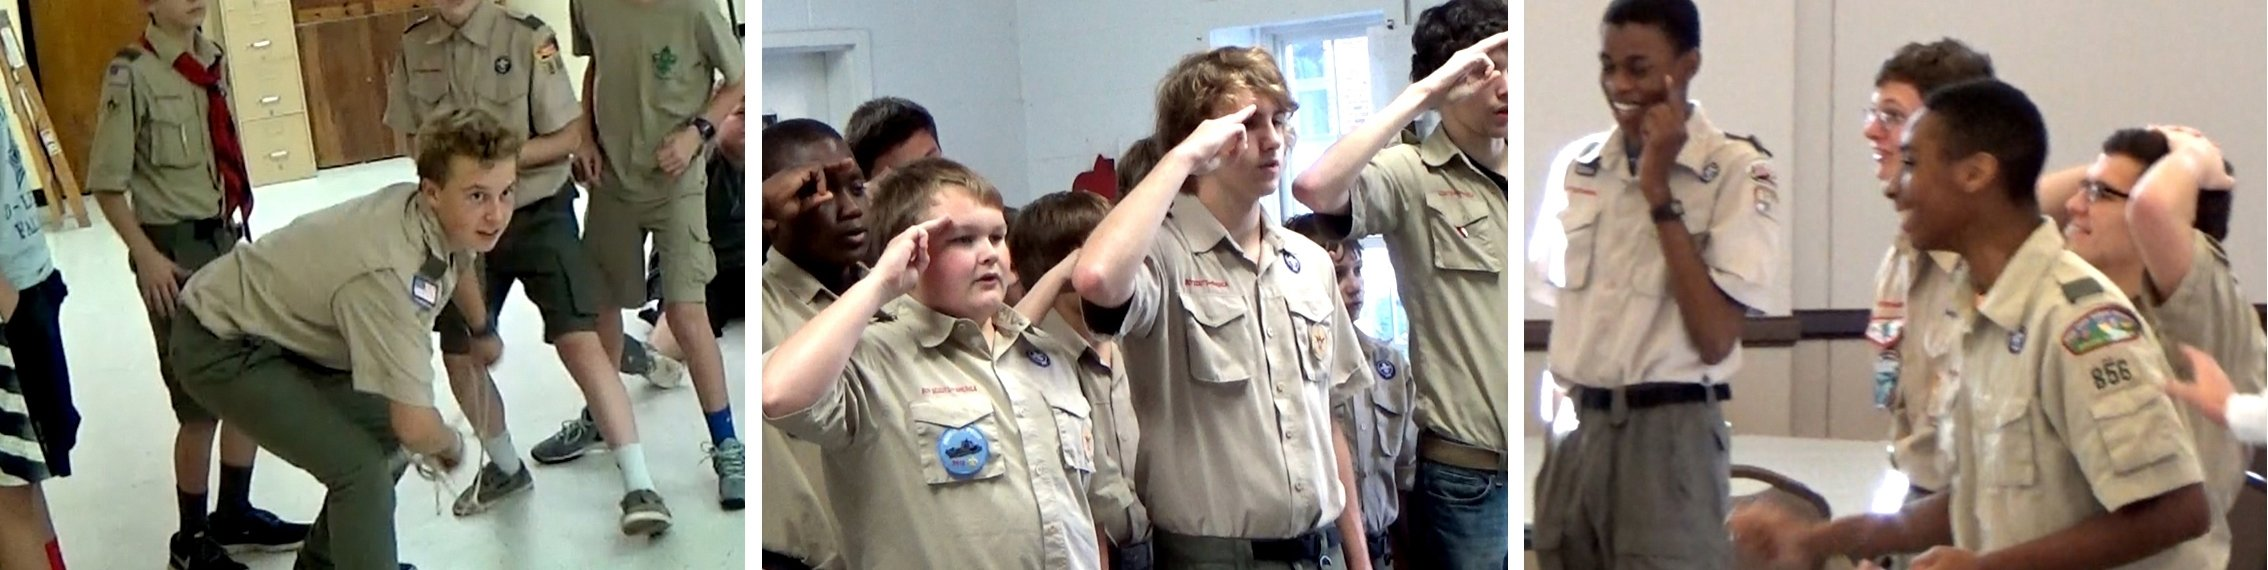 10 Great Boy Scout Troop Meeting Ideas troop program resources planning scout meetings that are 2020